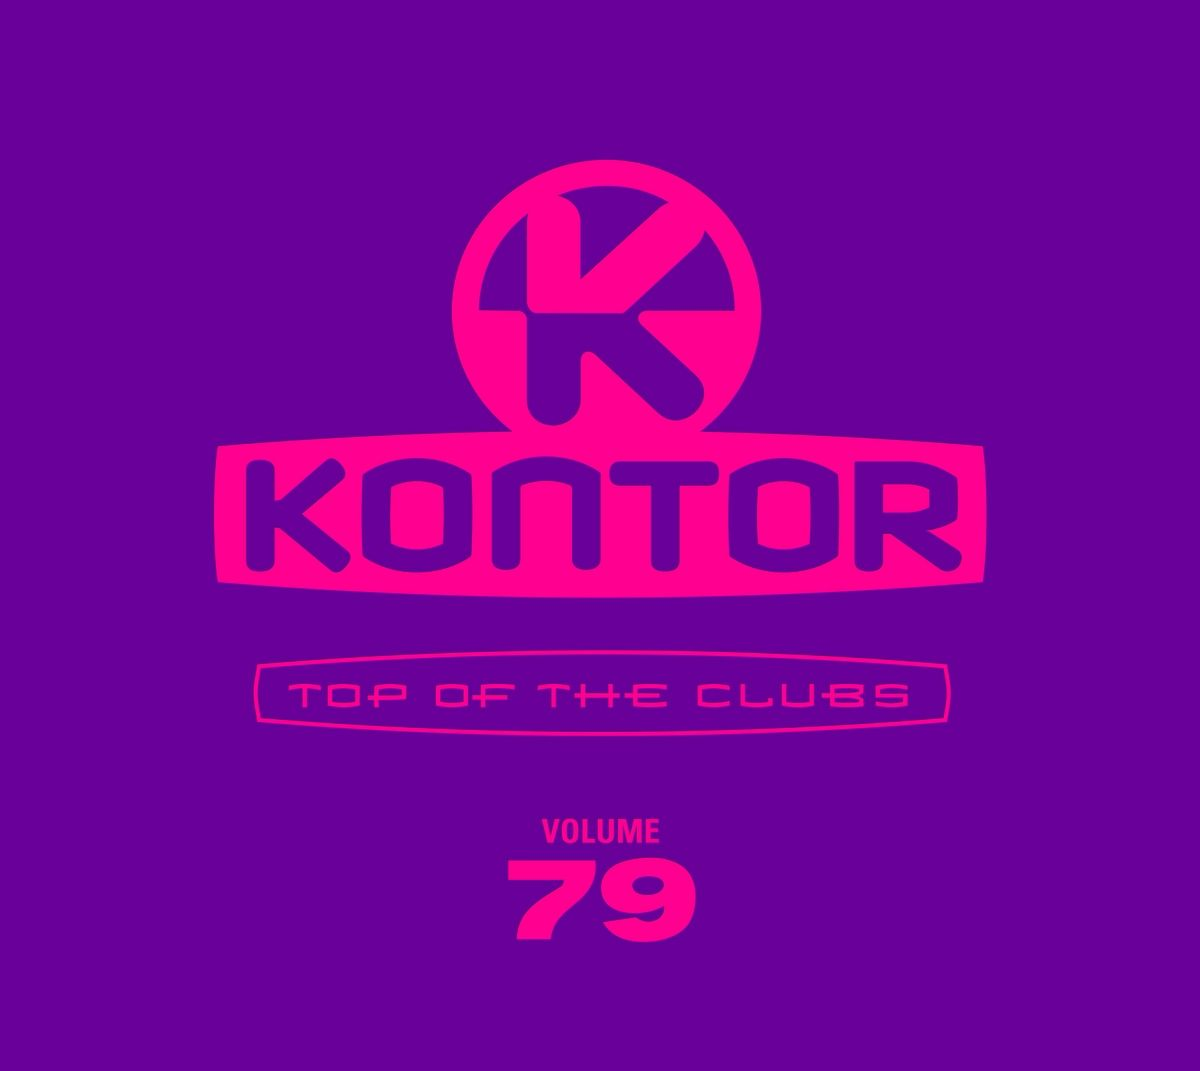 kontor top of the clubs 2013.03